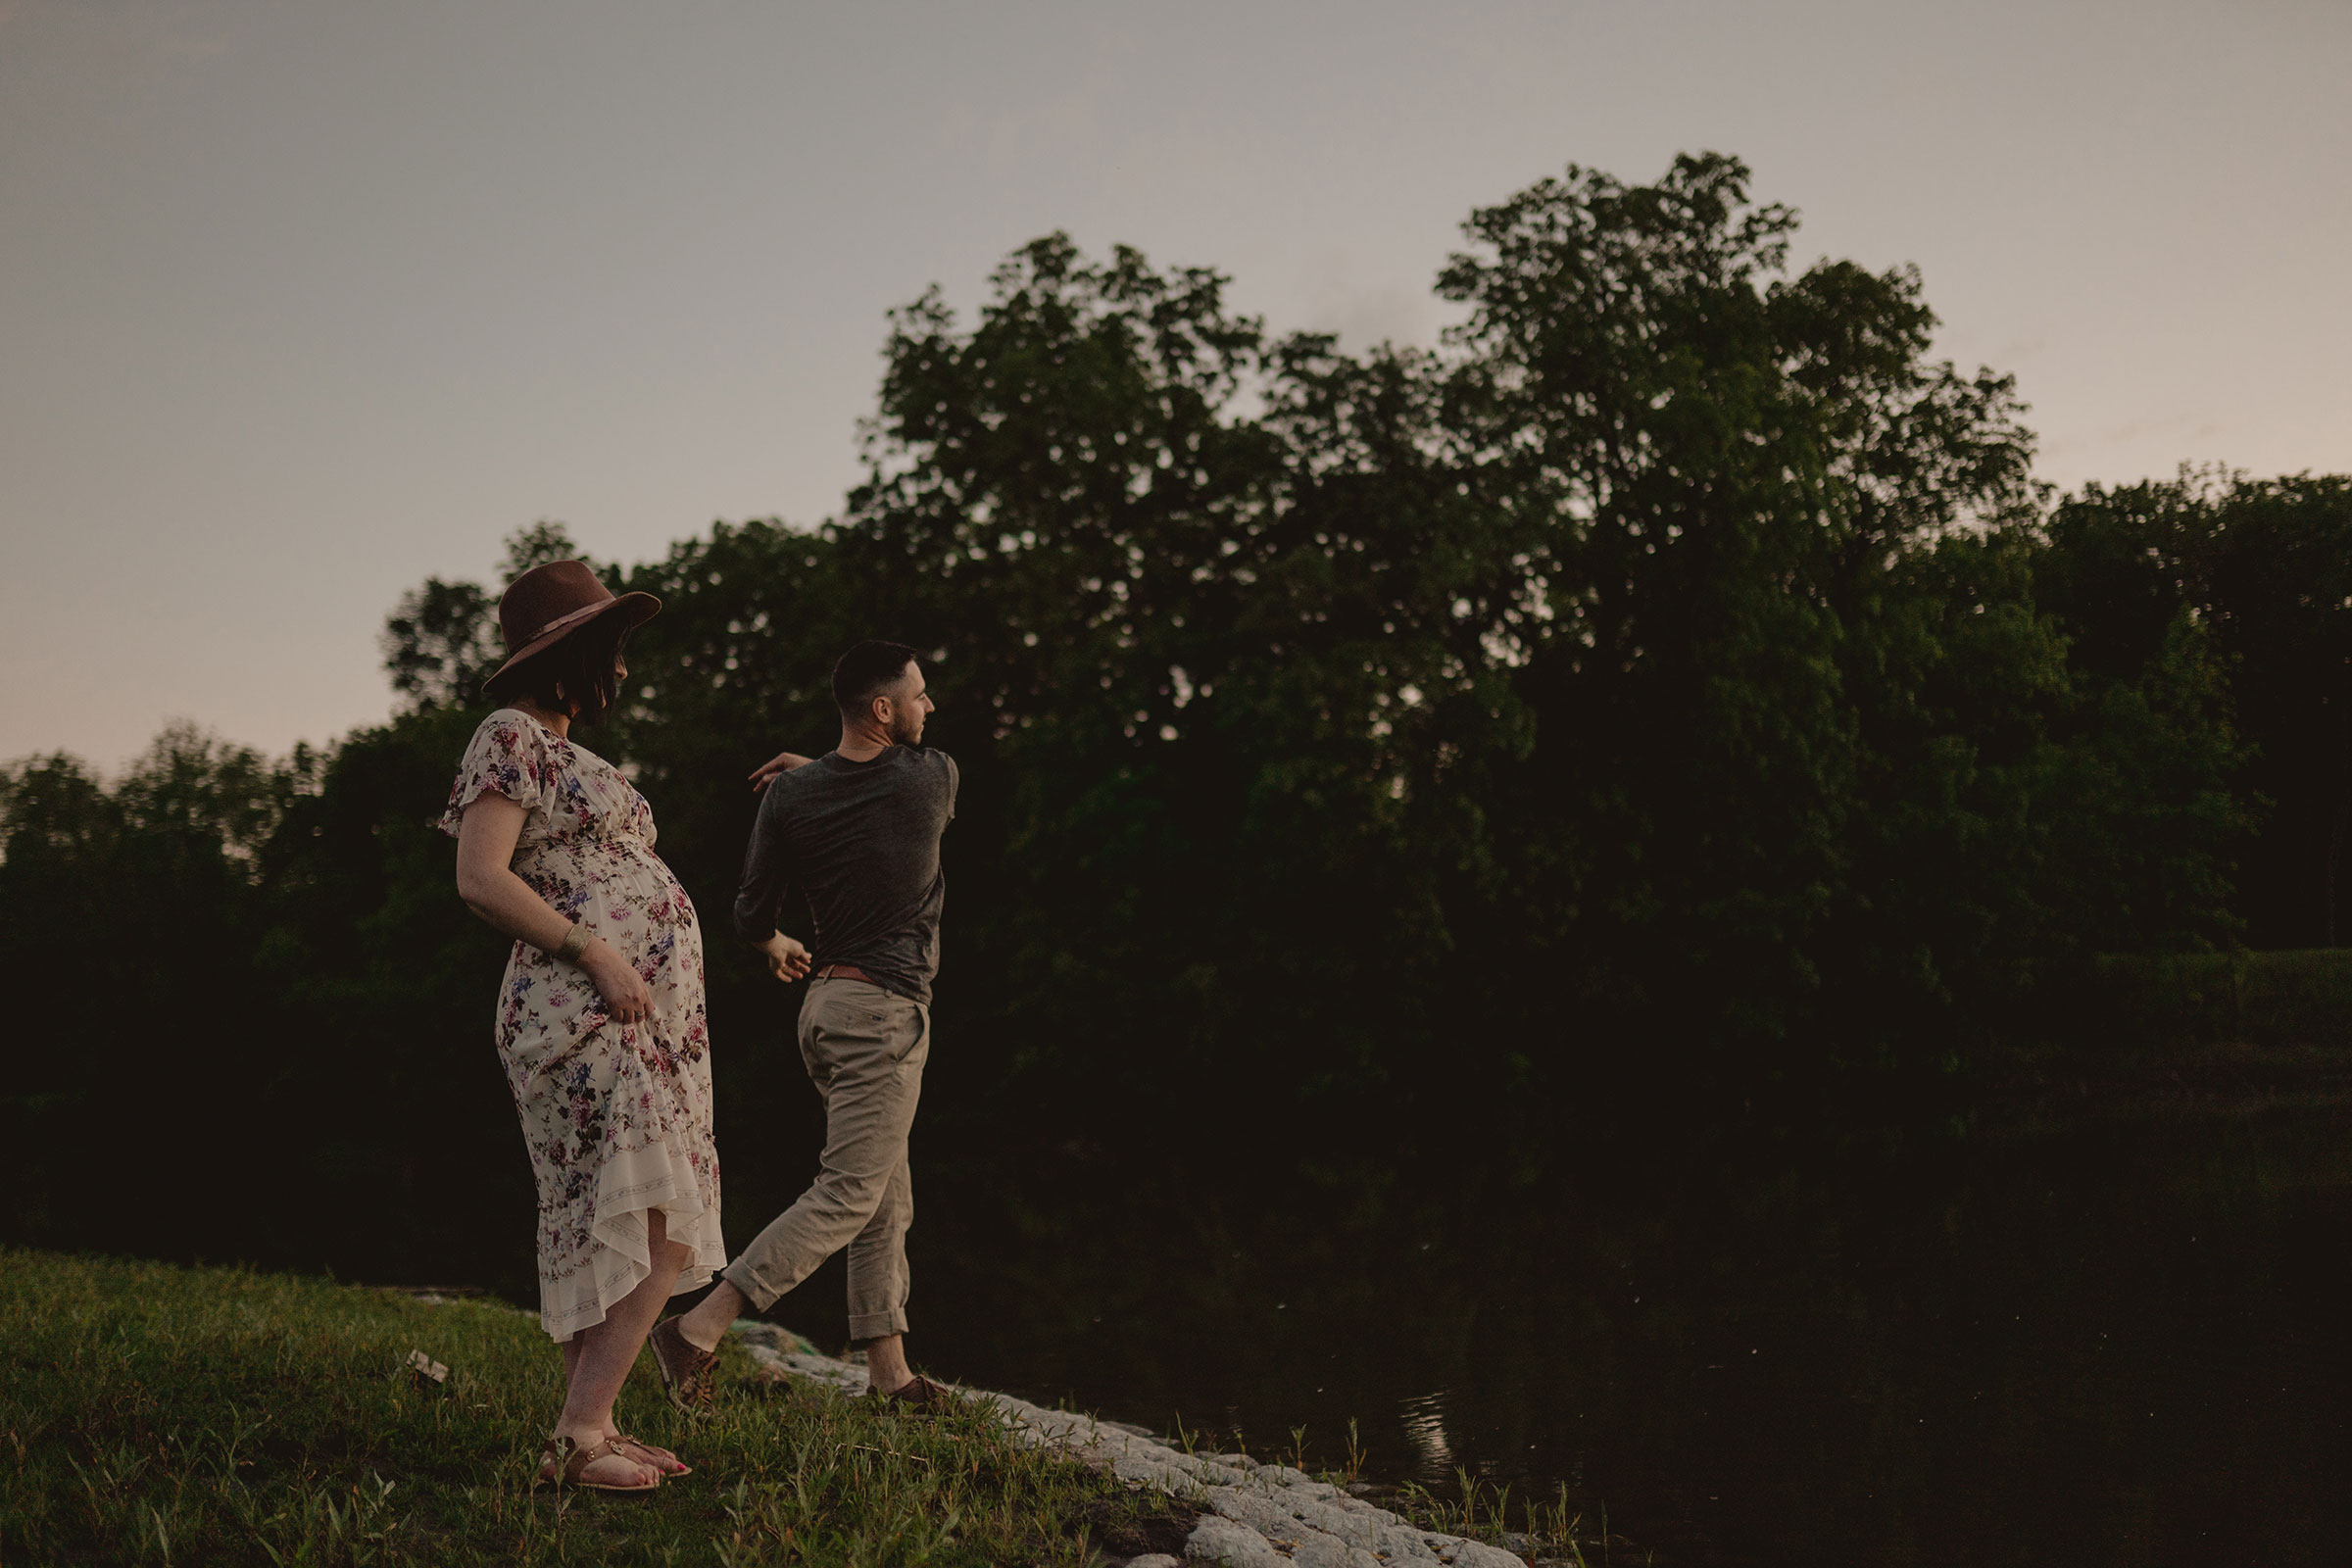 mom-to-be-watching-husband-throw-rocks-in-water-maternity-desmoines-iowa-raelyn-ramey-photography.jpg